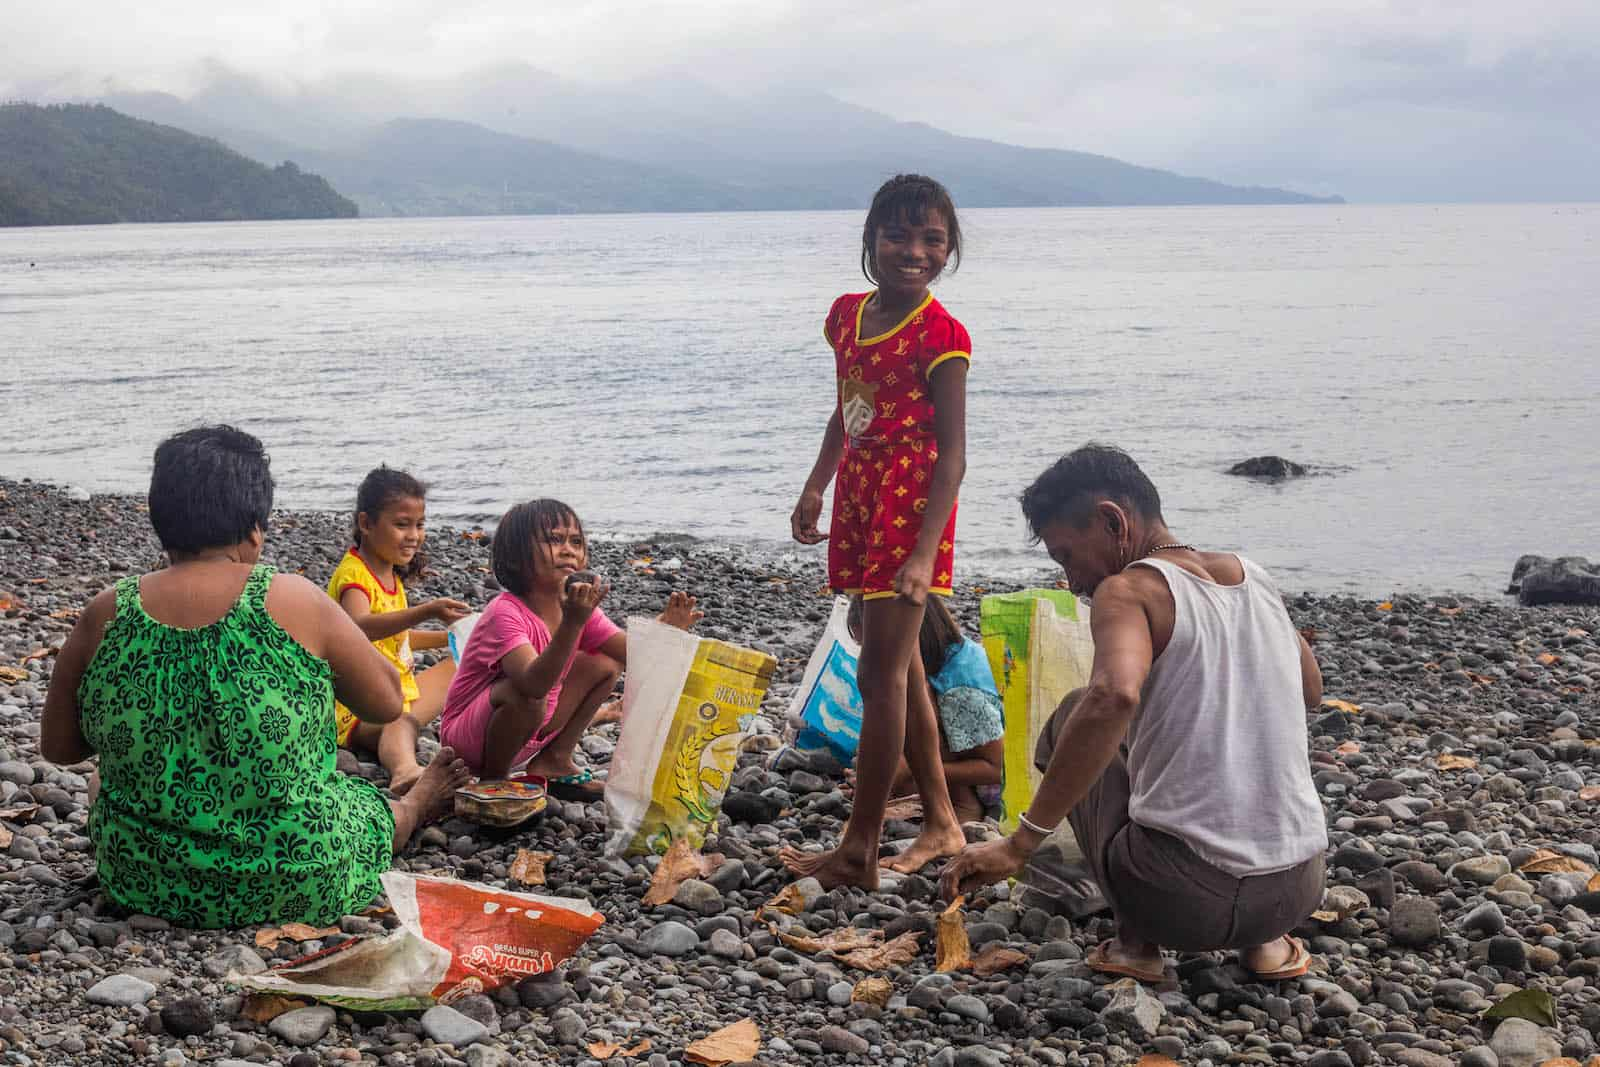 A girl stands on the beach, surrounded by girls and her grandparents collecting rocks.